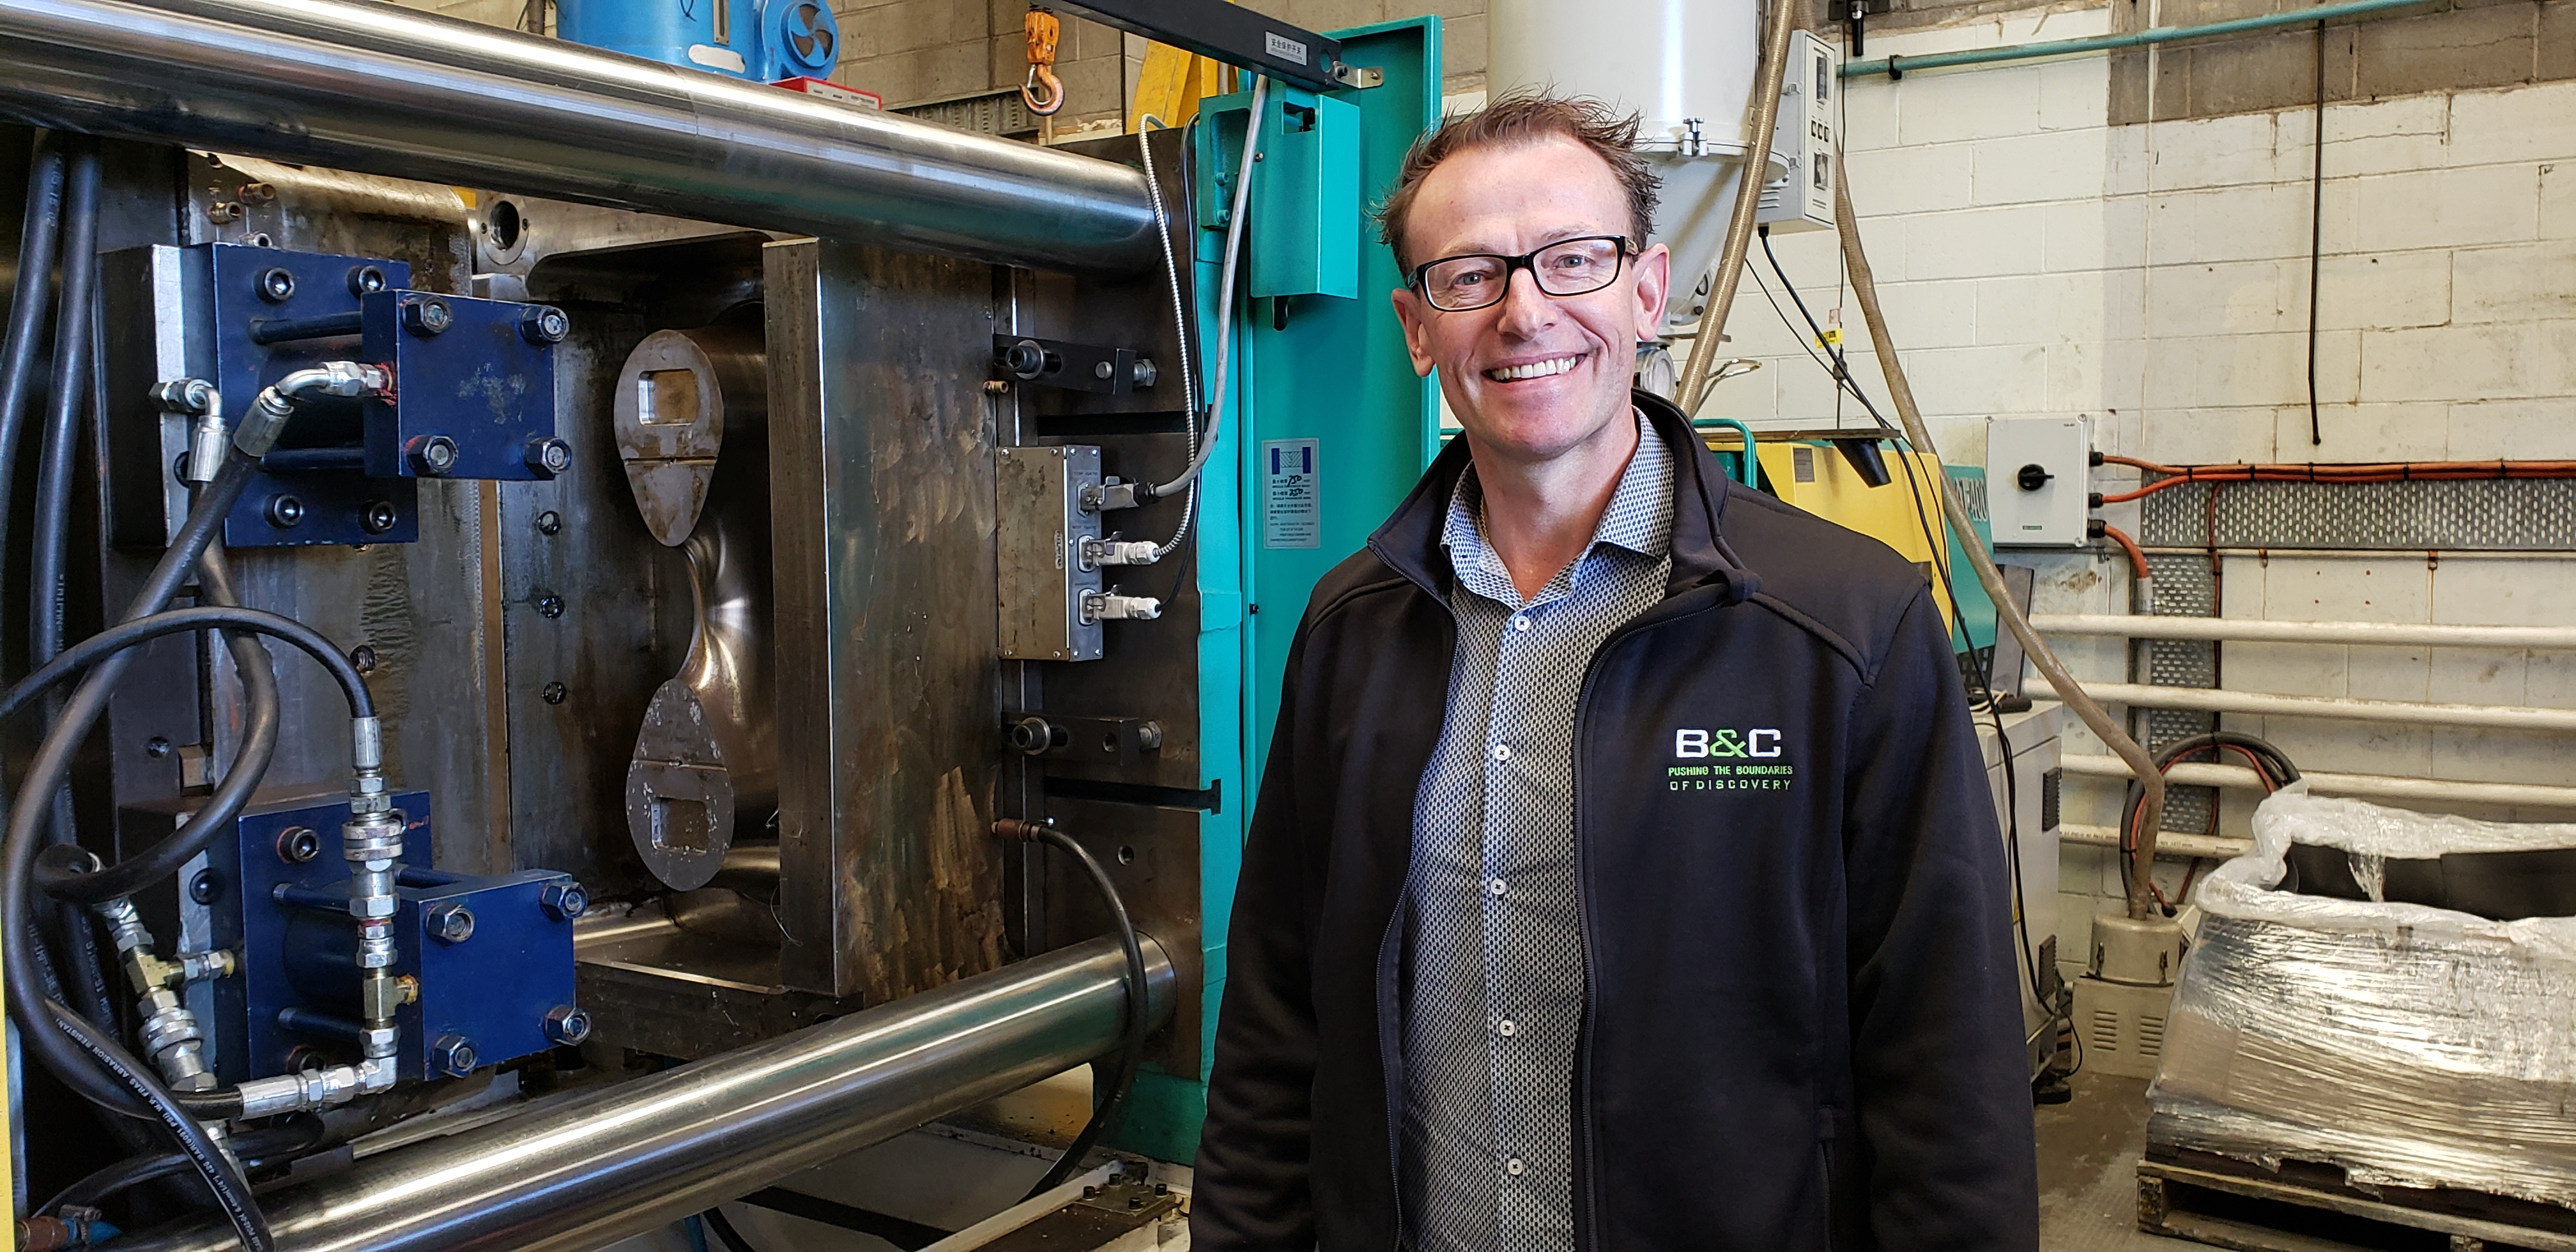 Royston Kent – A plastics manufacturer for recycled materials